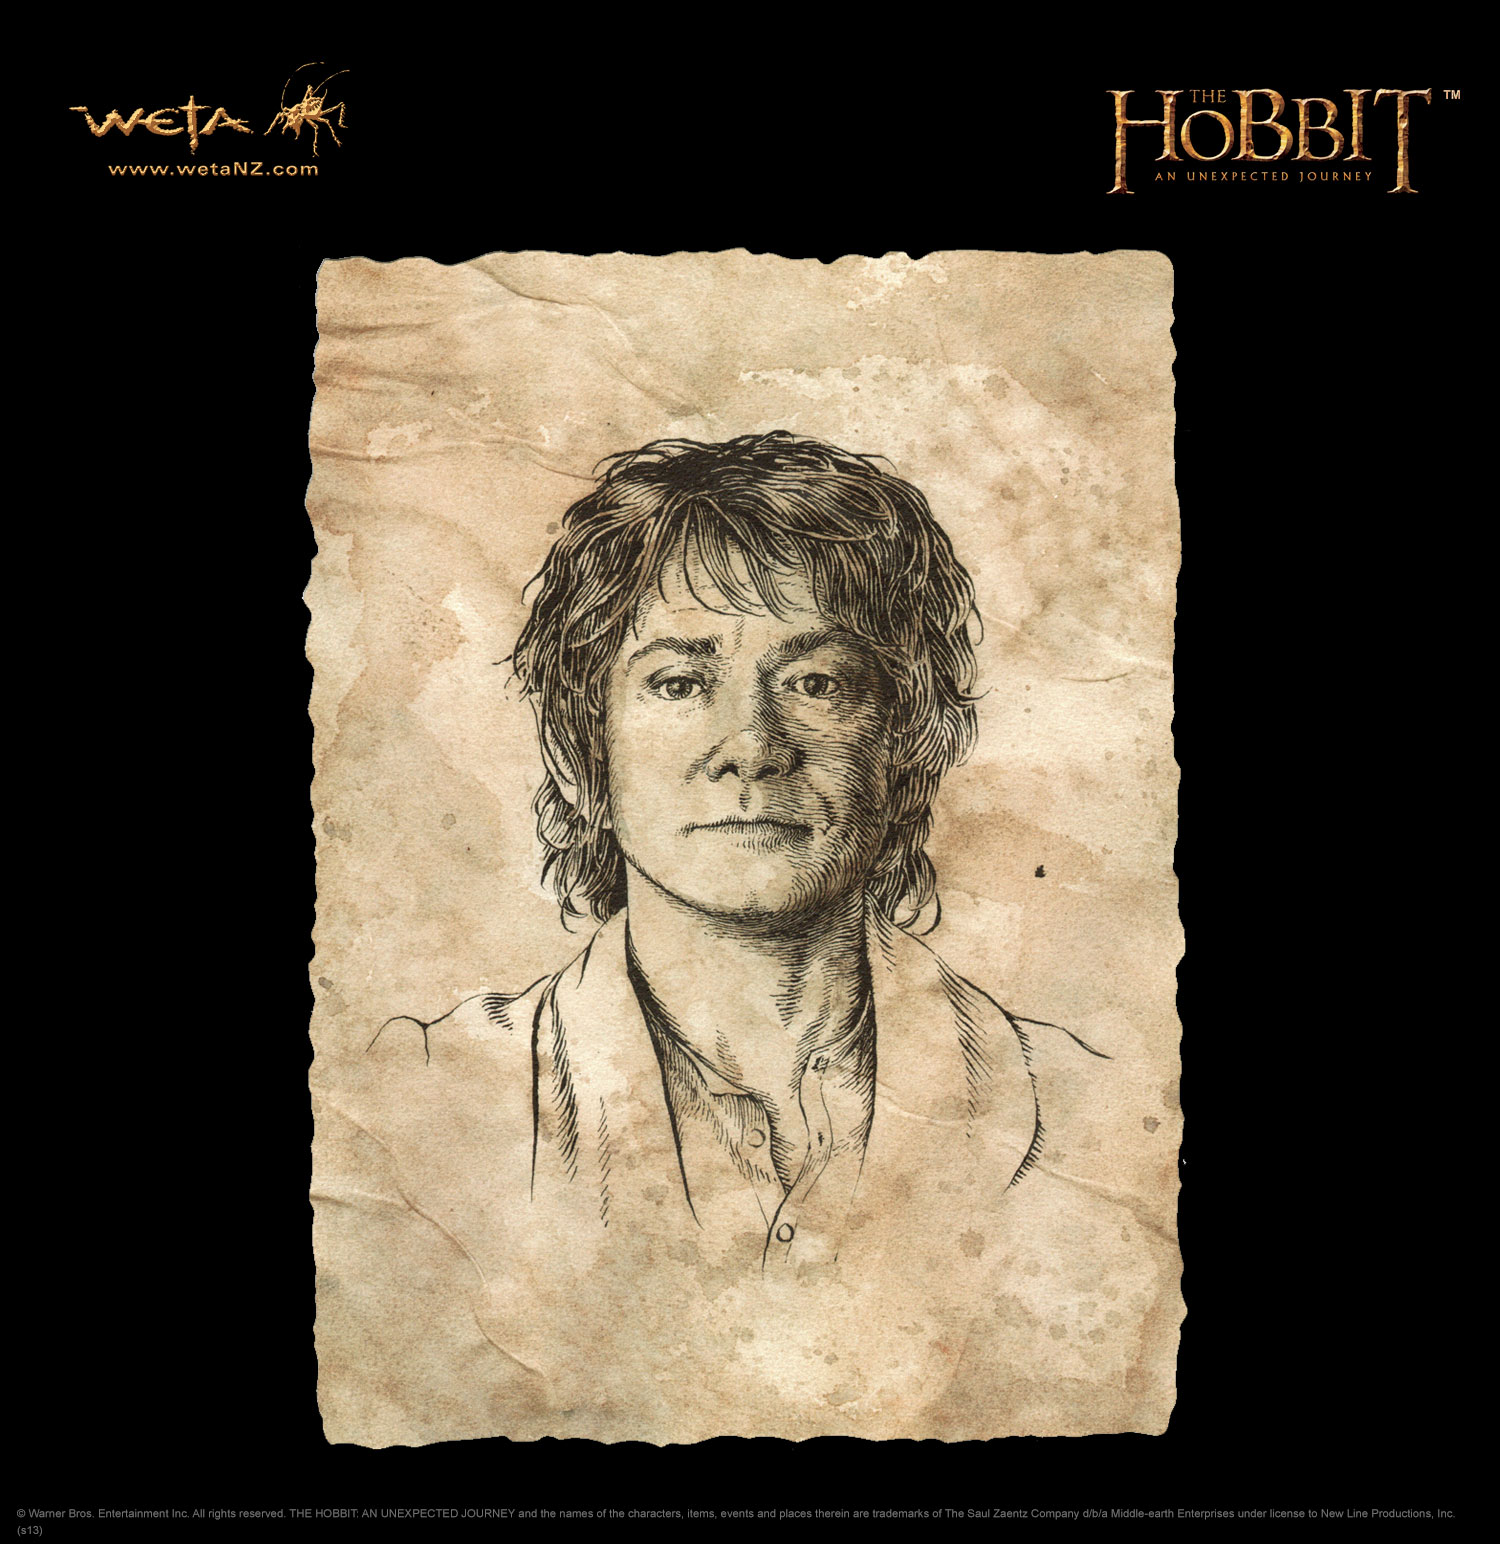 A focus on the main character bilbo baggins in the story of hobbit